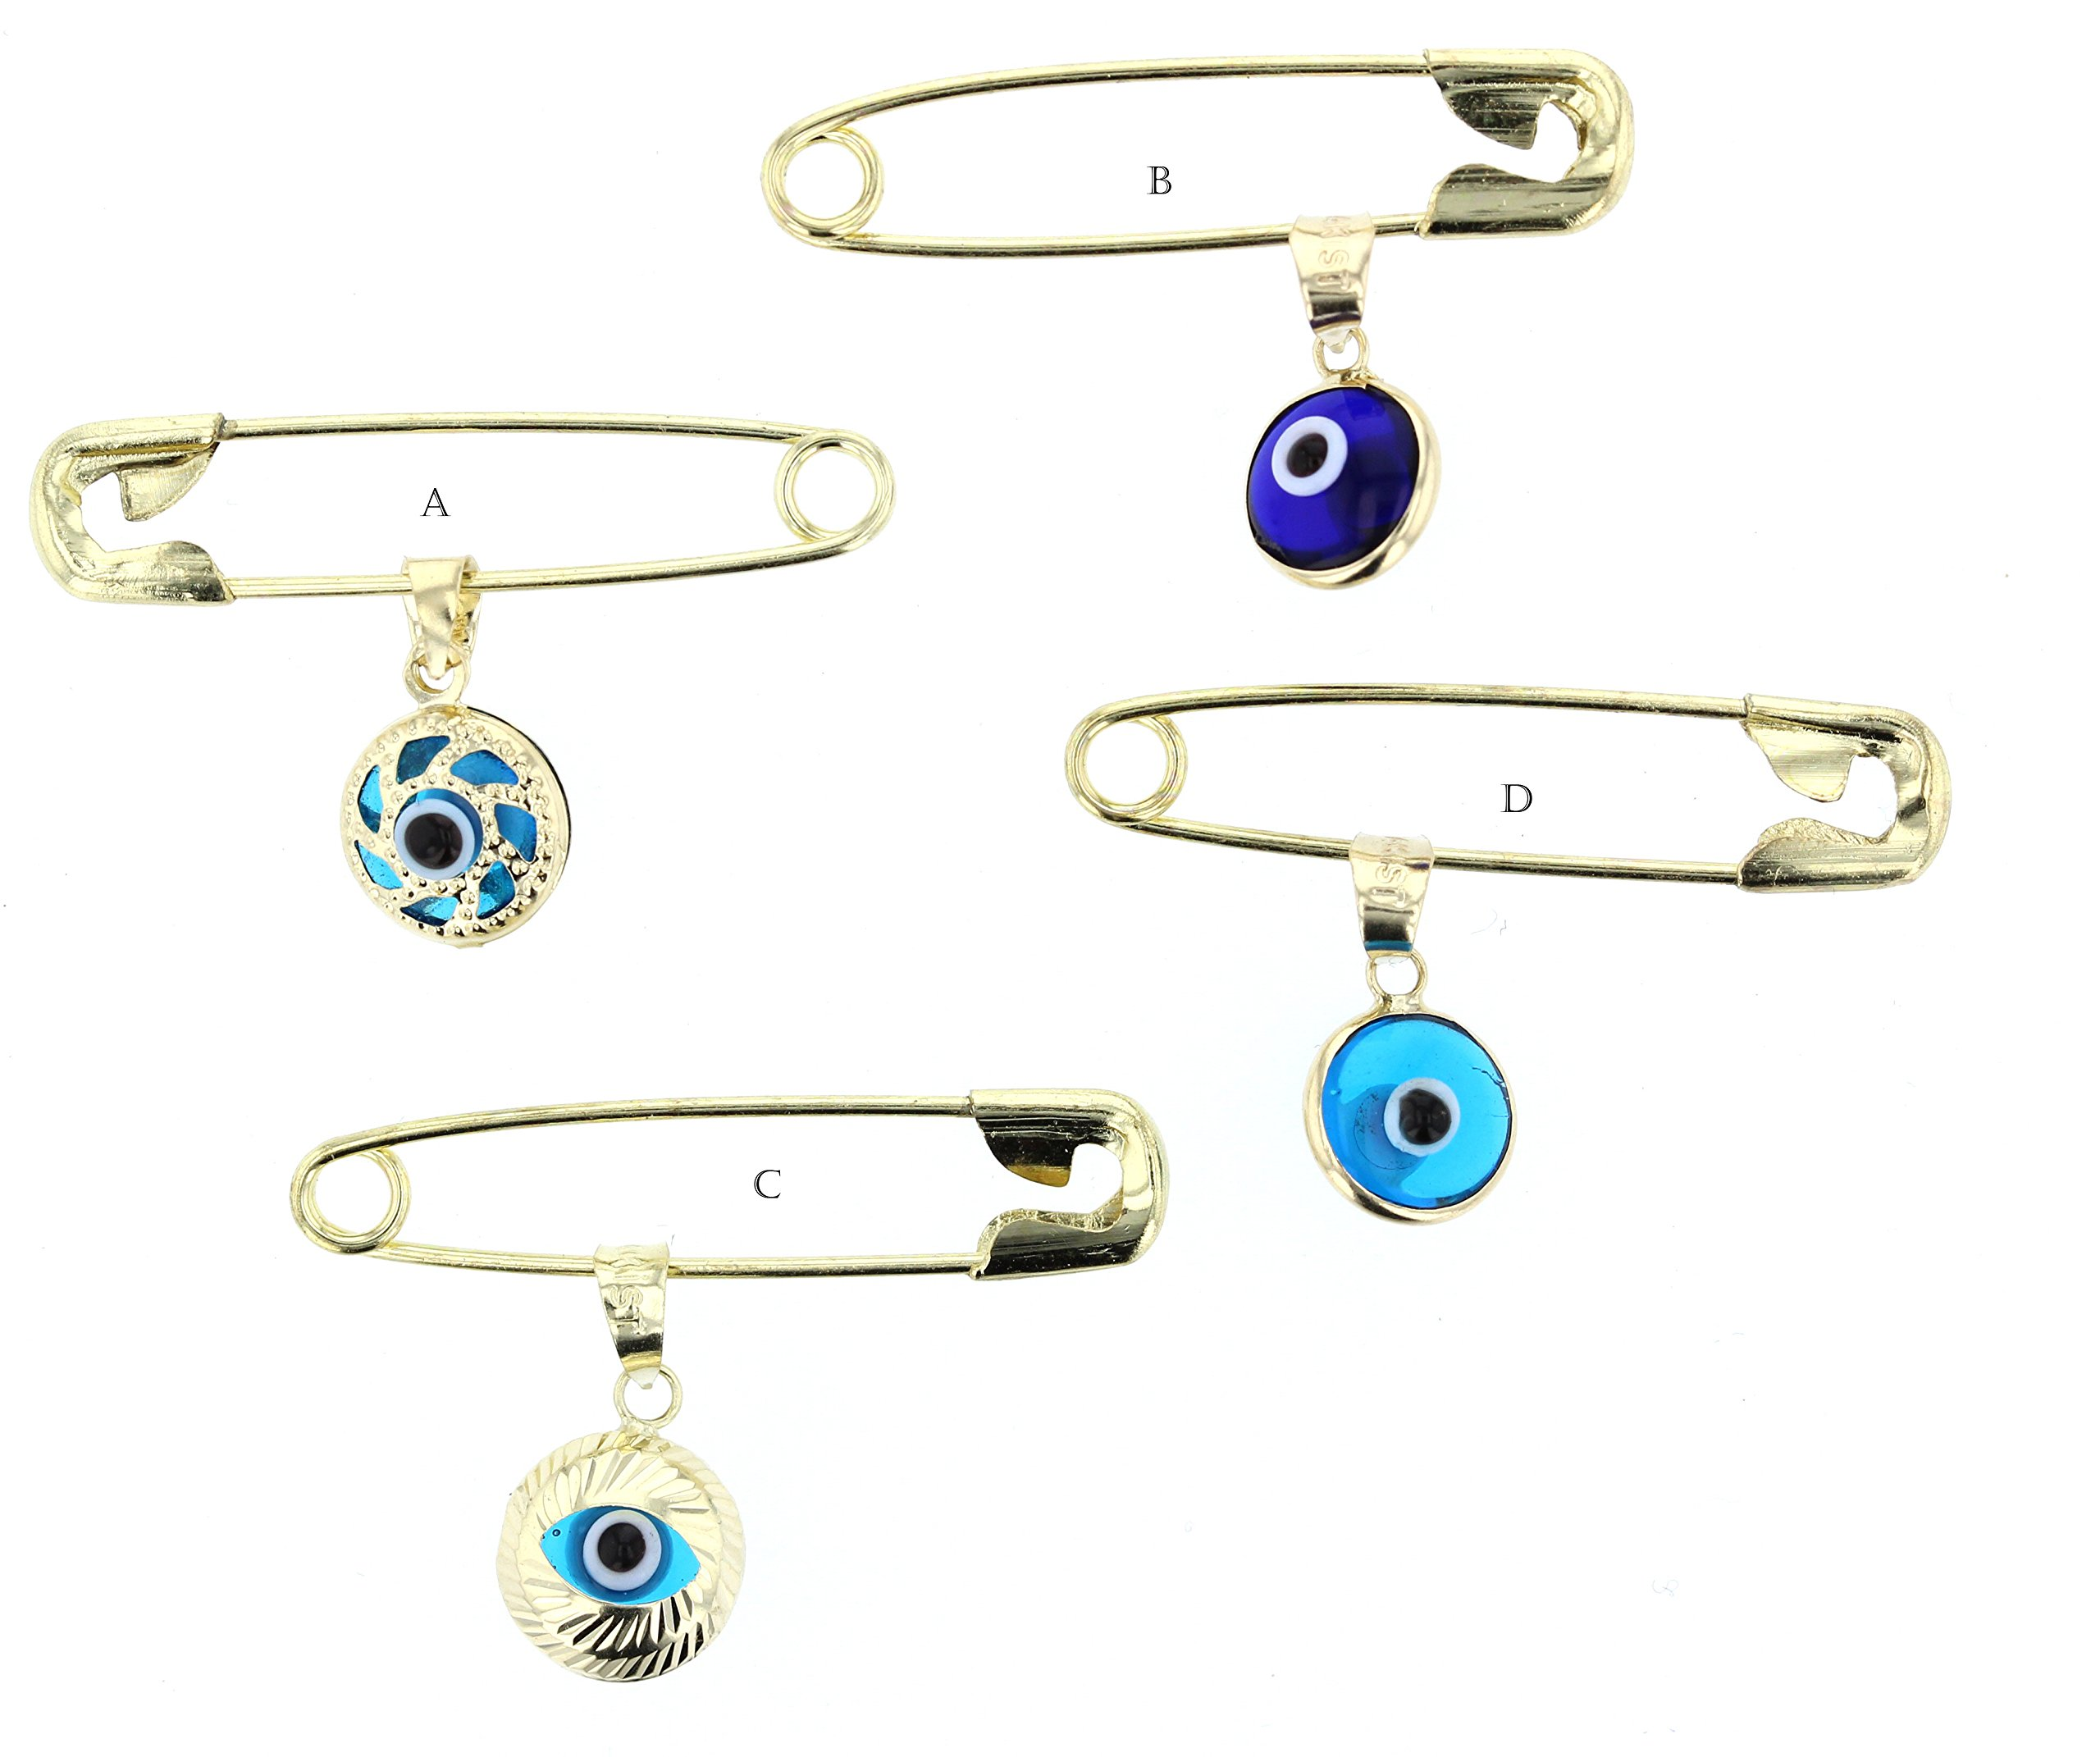 Evil Eye, 14Kt Gold Evil Eye Charm With Stainles Steel Safety Pin To Hook (A) by DiamondJewelryNY